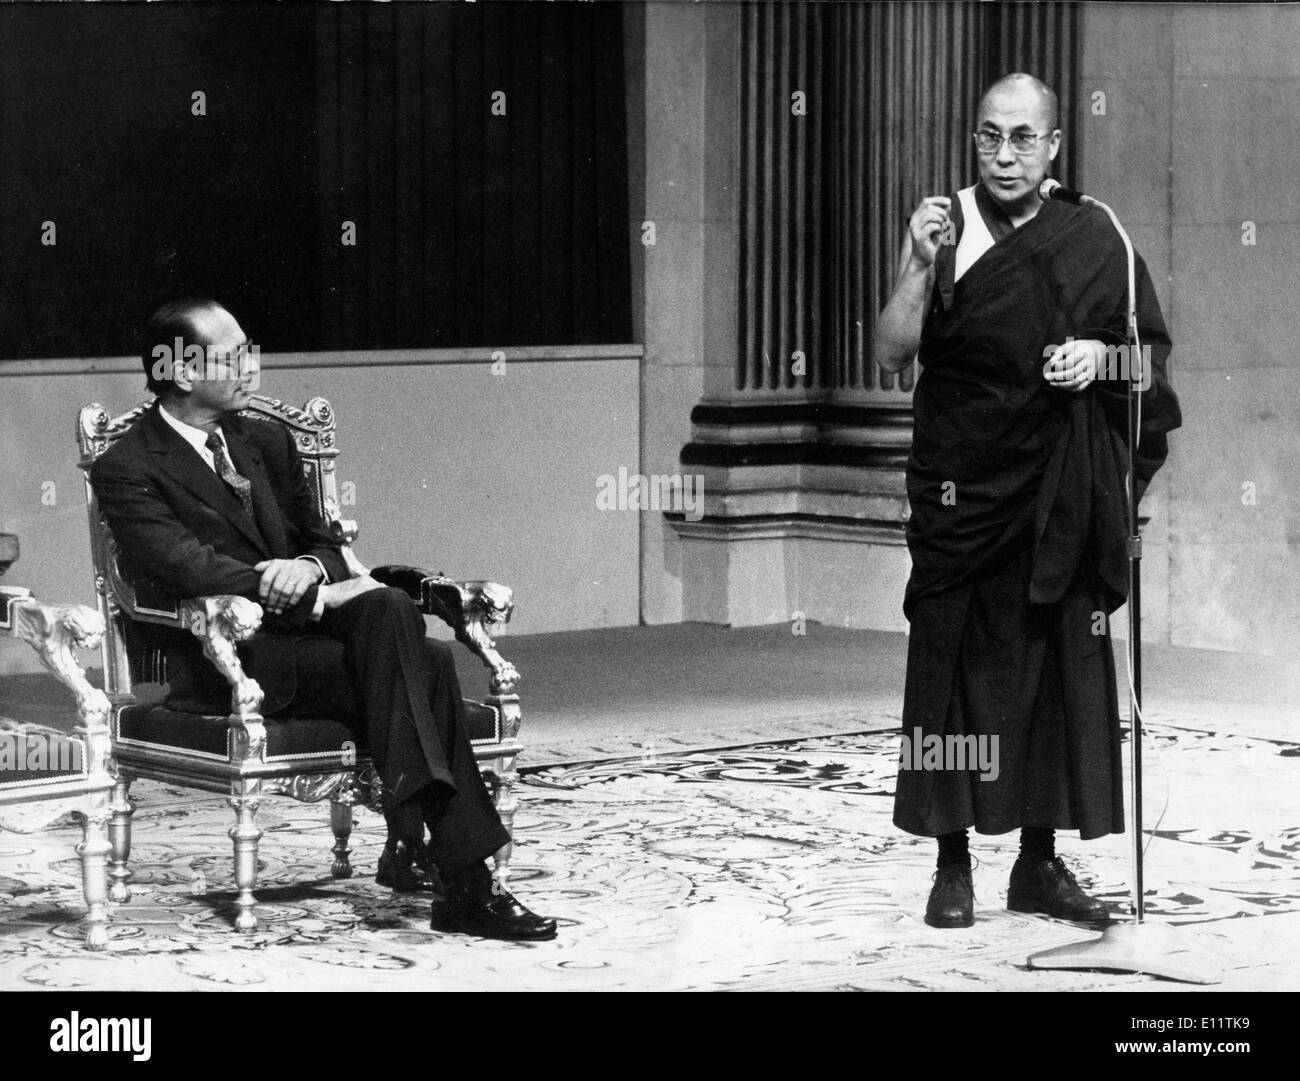 Tibetan spiritual Religious leader 14th DALAI LAMA in a meeting with French politician JACQUES CHIRAC - Stock Image